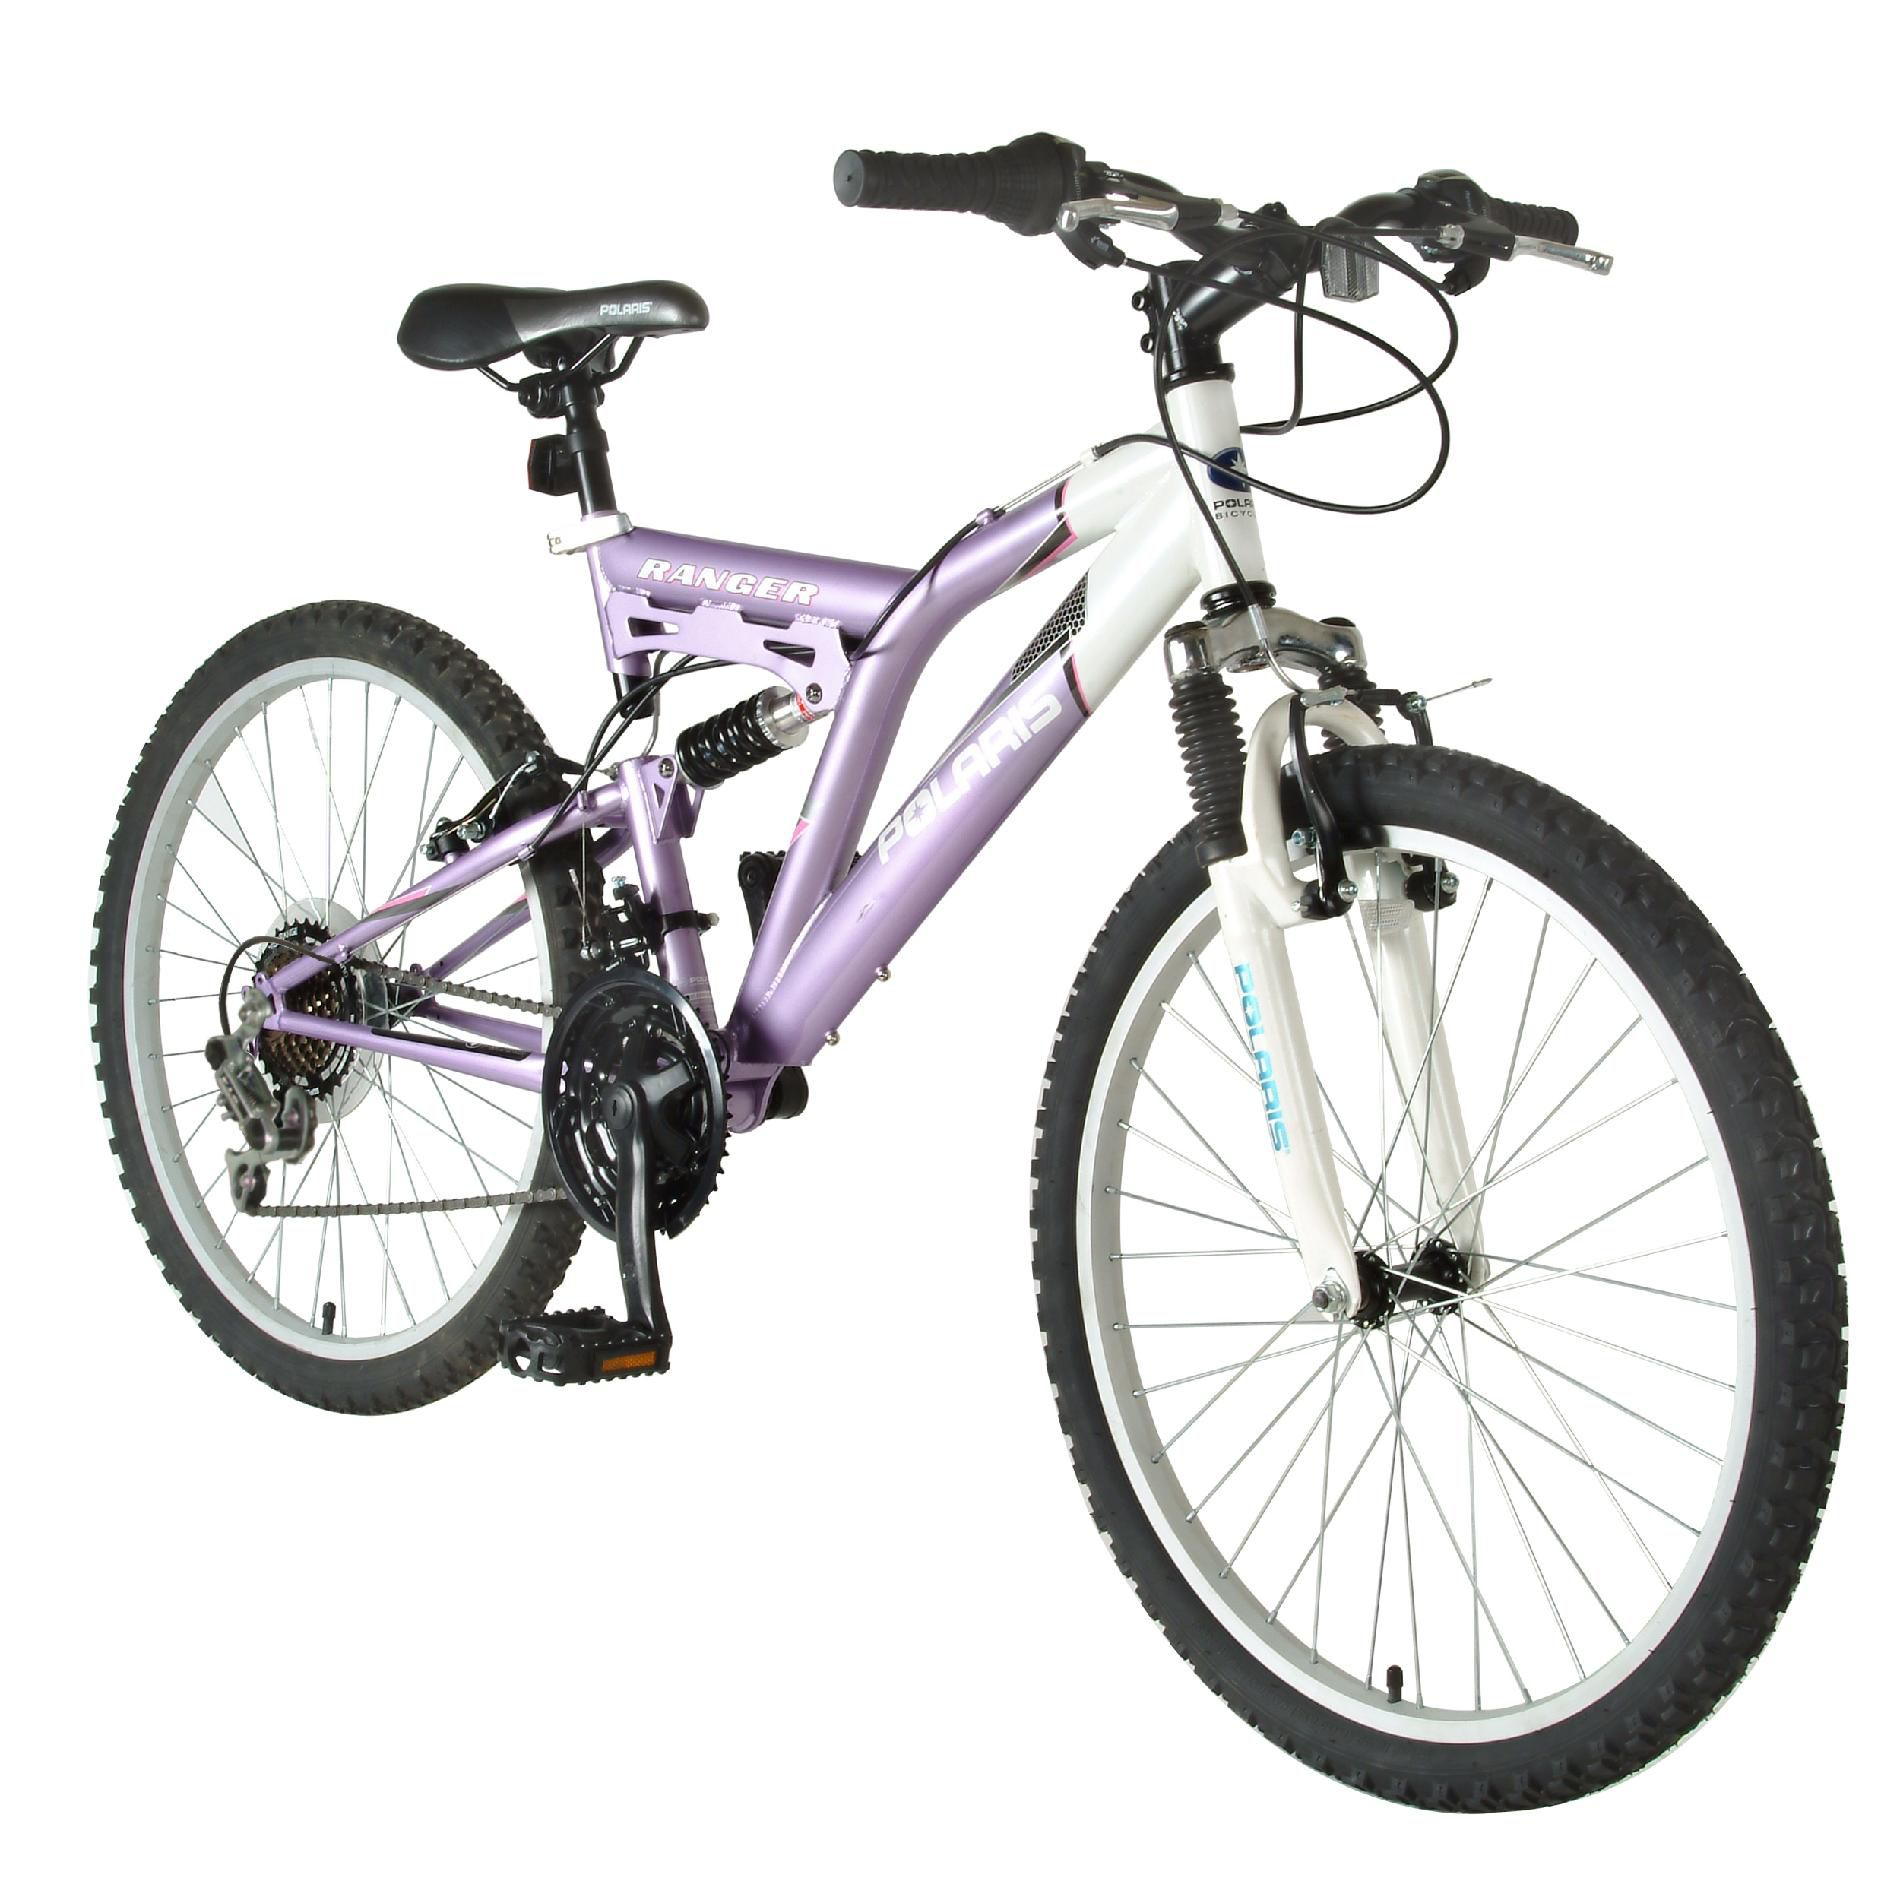 "Polaris Ranger Dual Suspension 24"" Girls Mountain Bike"